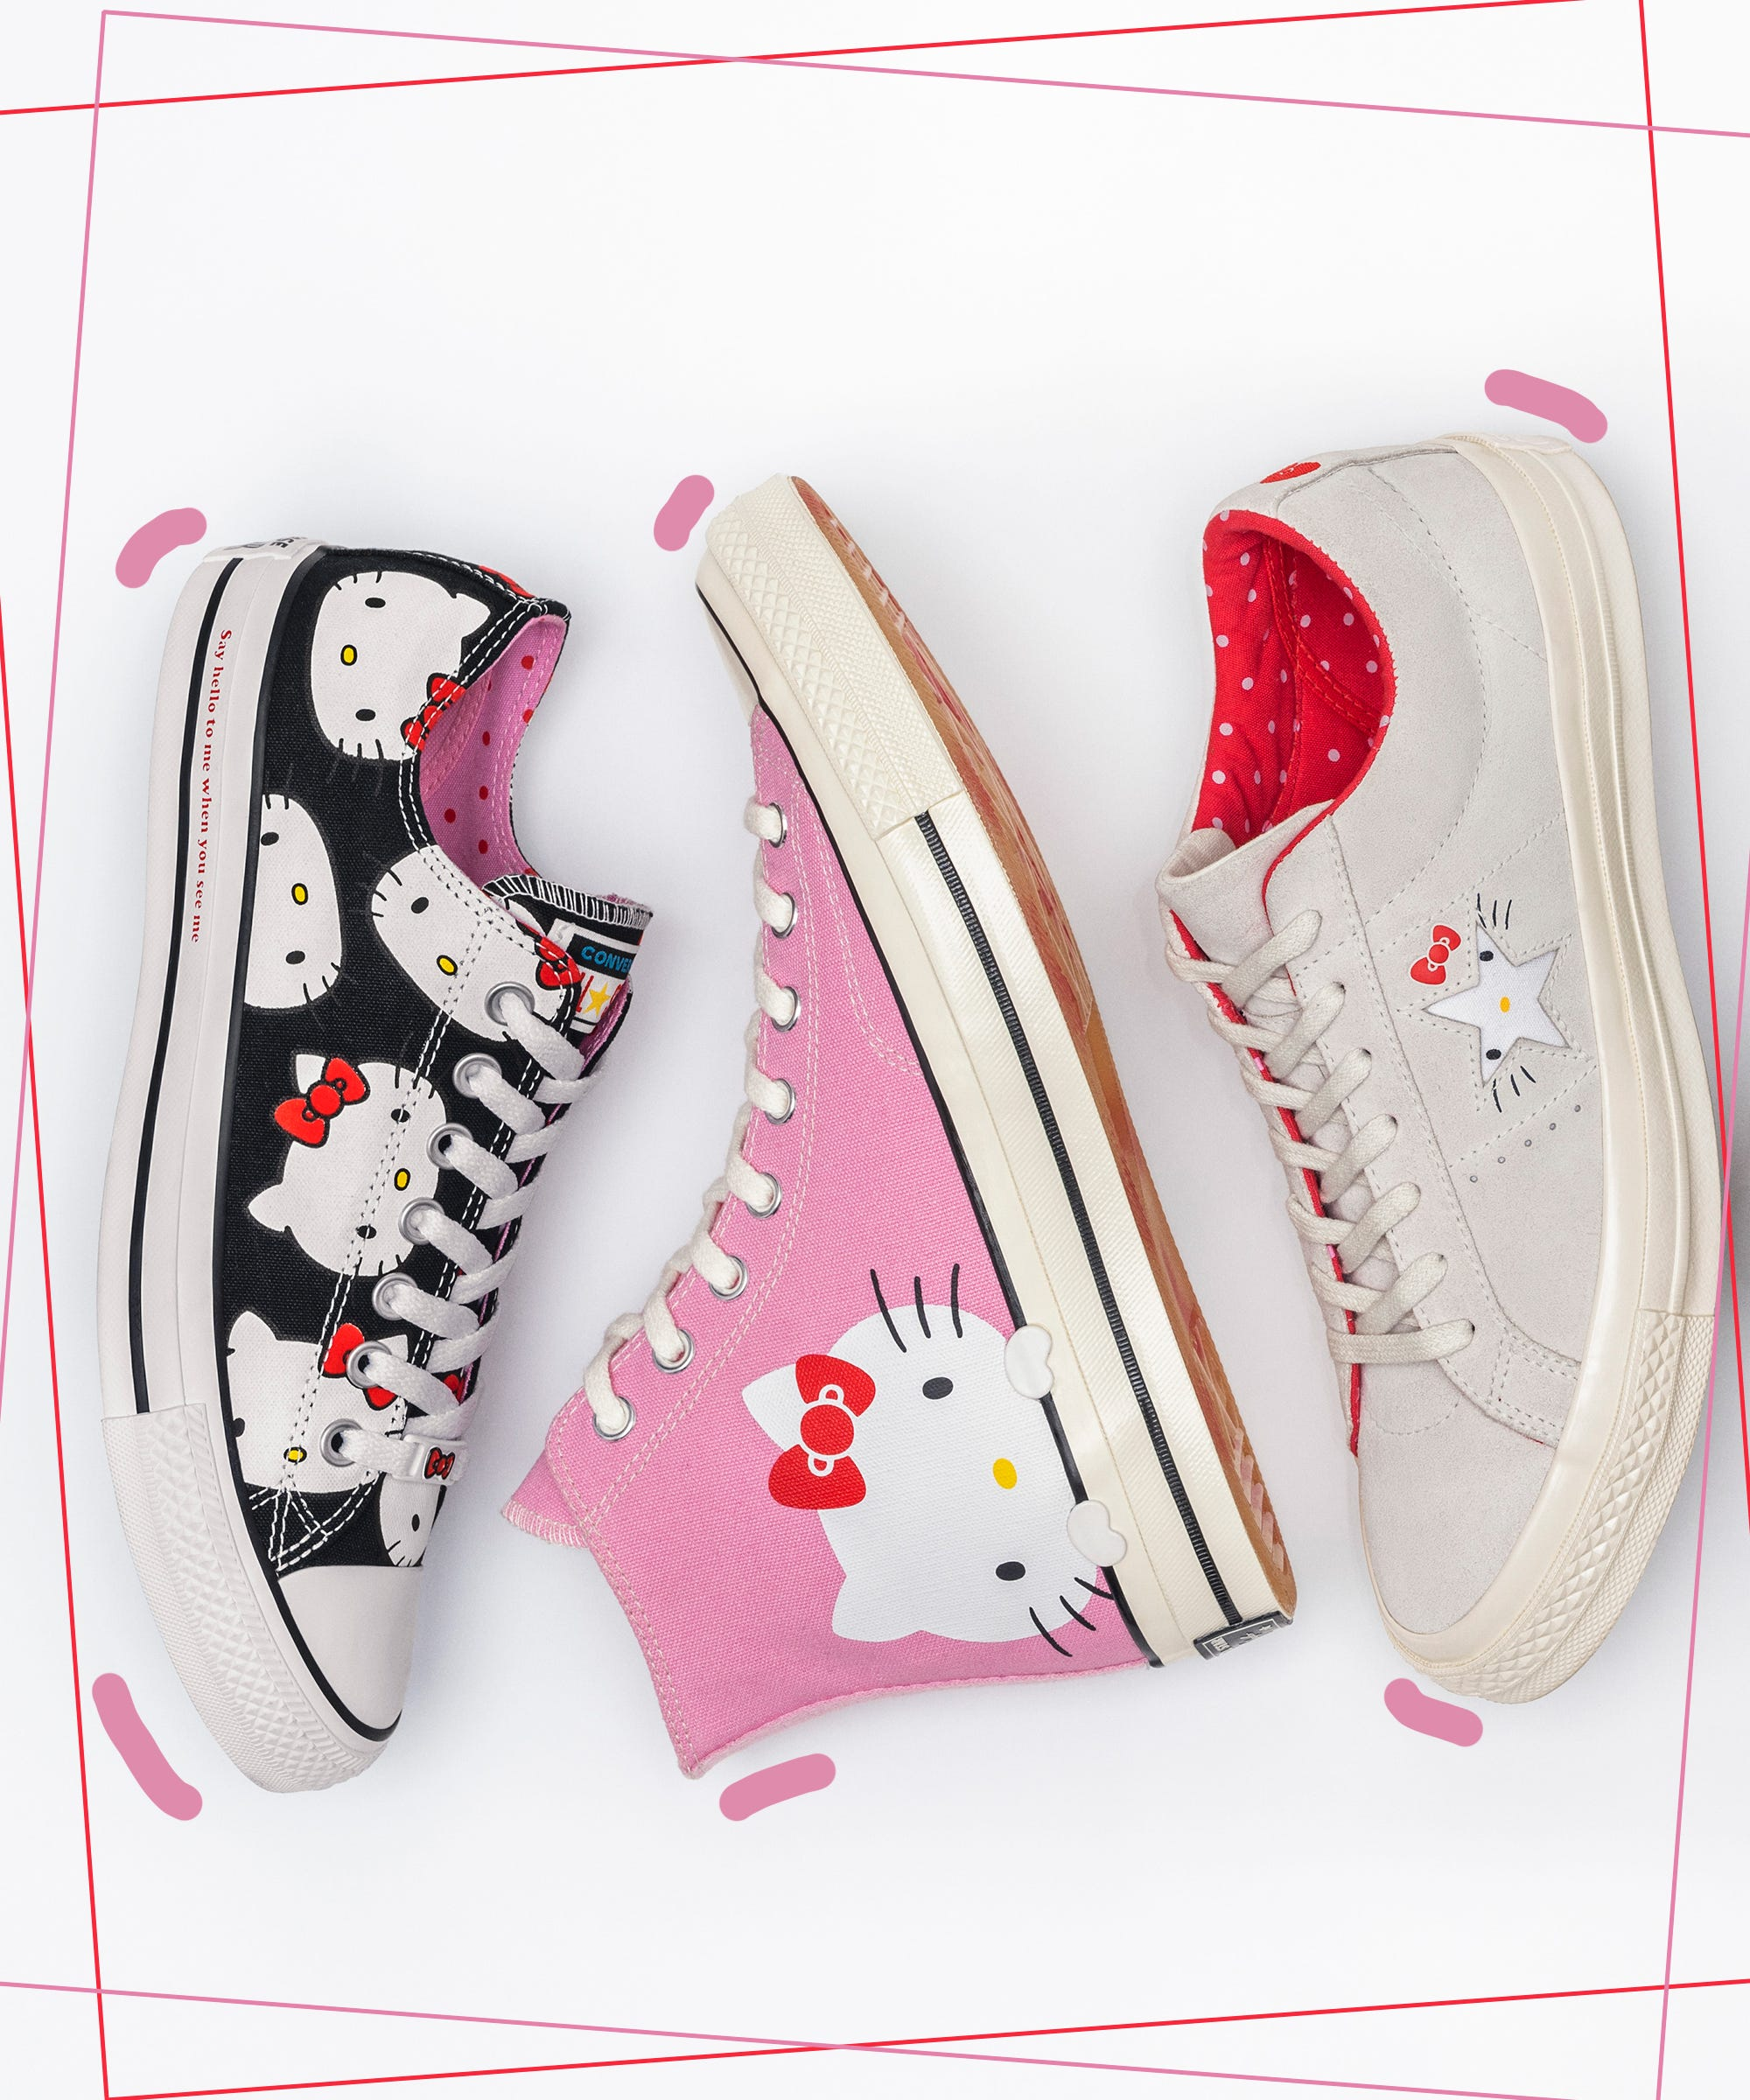 And So Good Hello Kitty 2018 Is Collab Converse Sneaker 53ARScjLq4